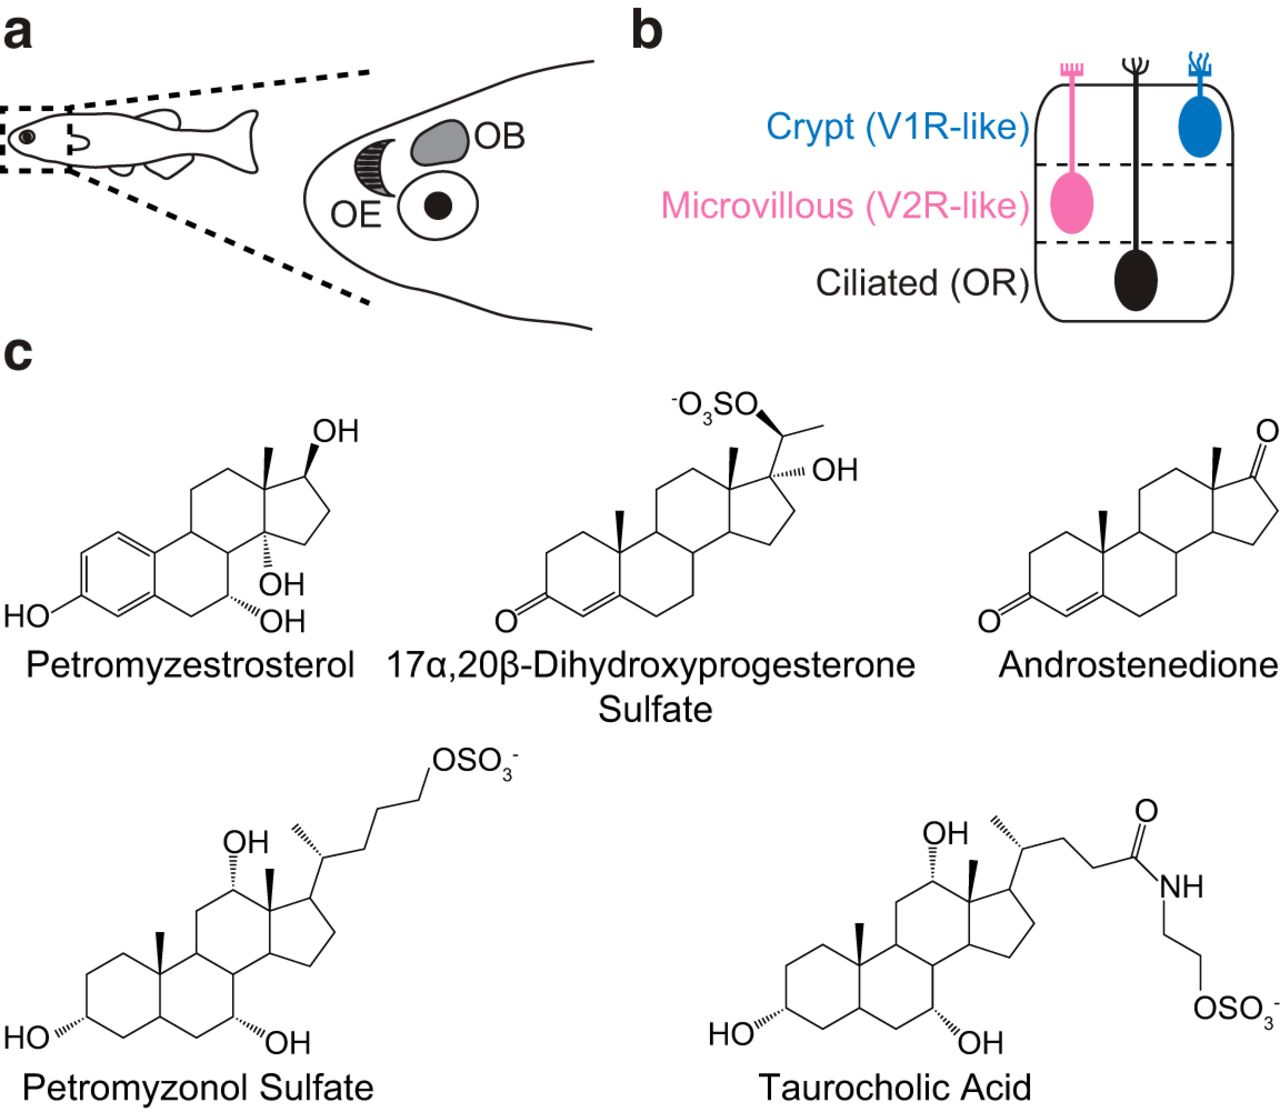 Excreted Steroids in Vertebrate Social Communication